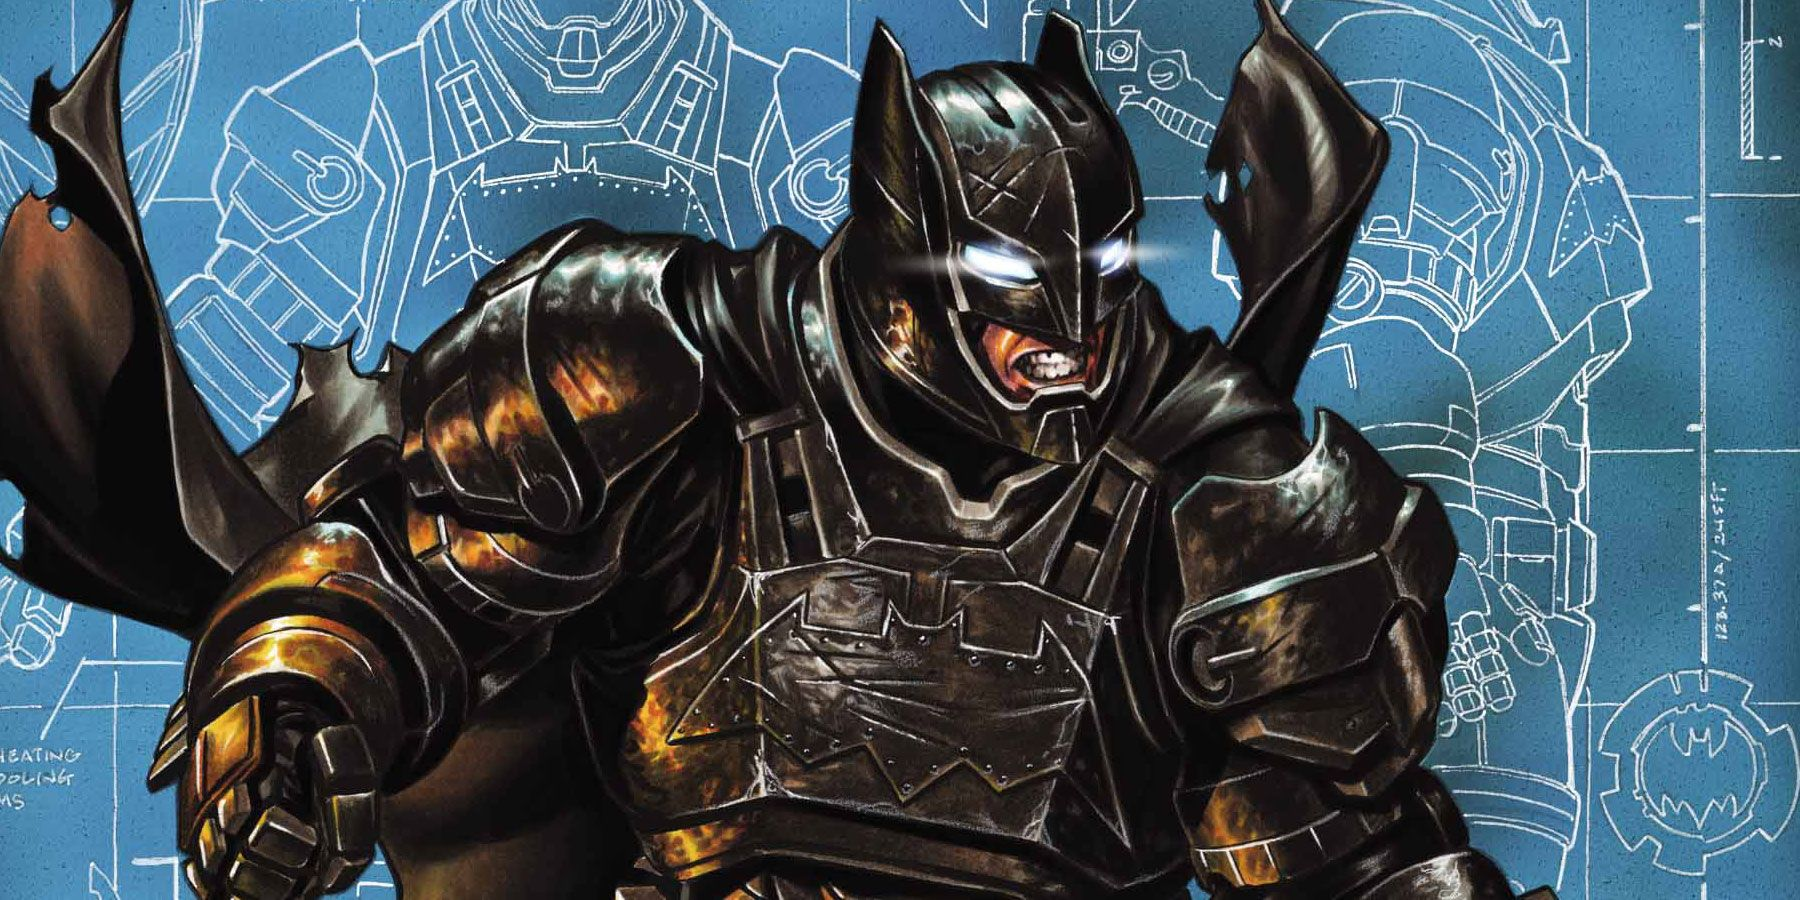 EXCL: Batman, Arkham Knight's First Fight Escalates in Detective Comics #1002